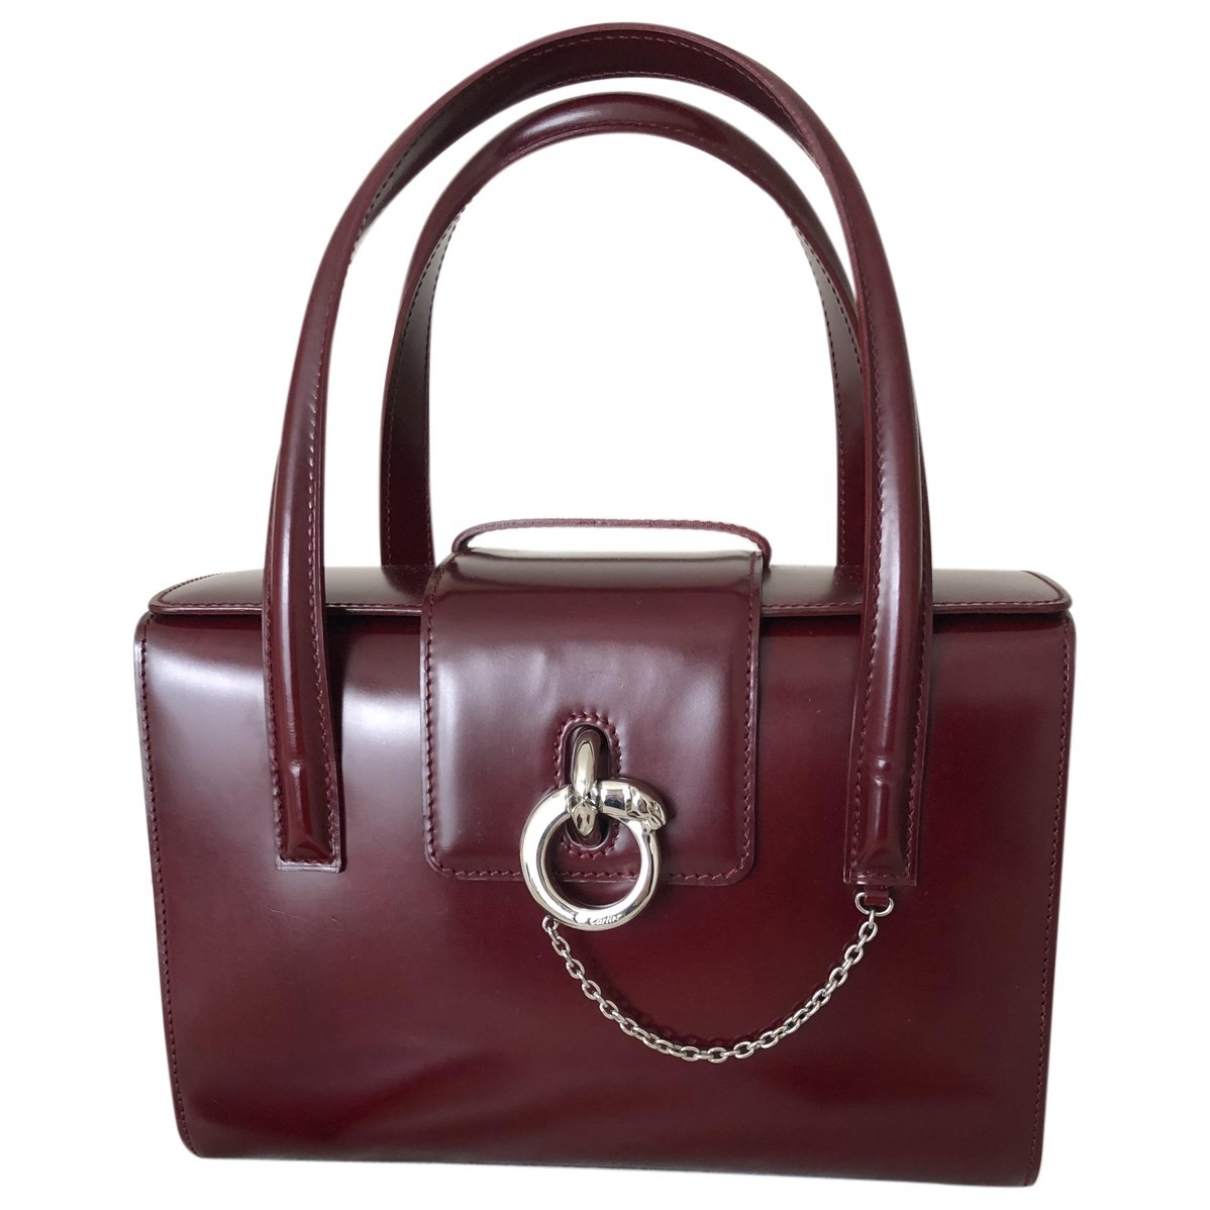 Cartier Panthère Burgundy Patent leather handbag for Women \N